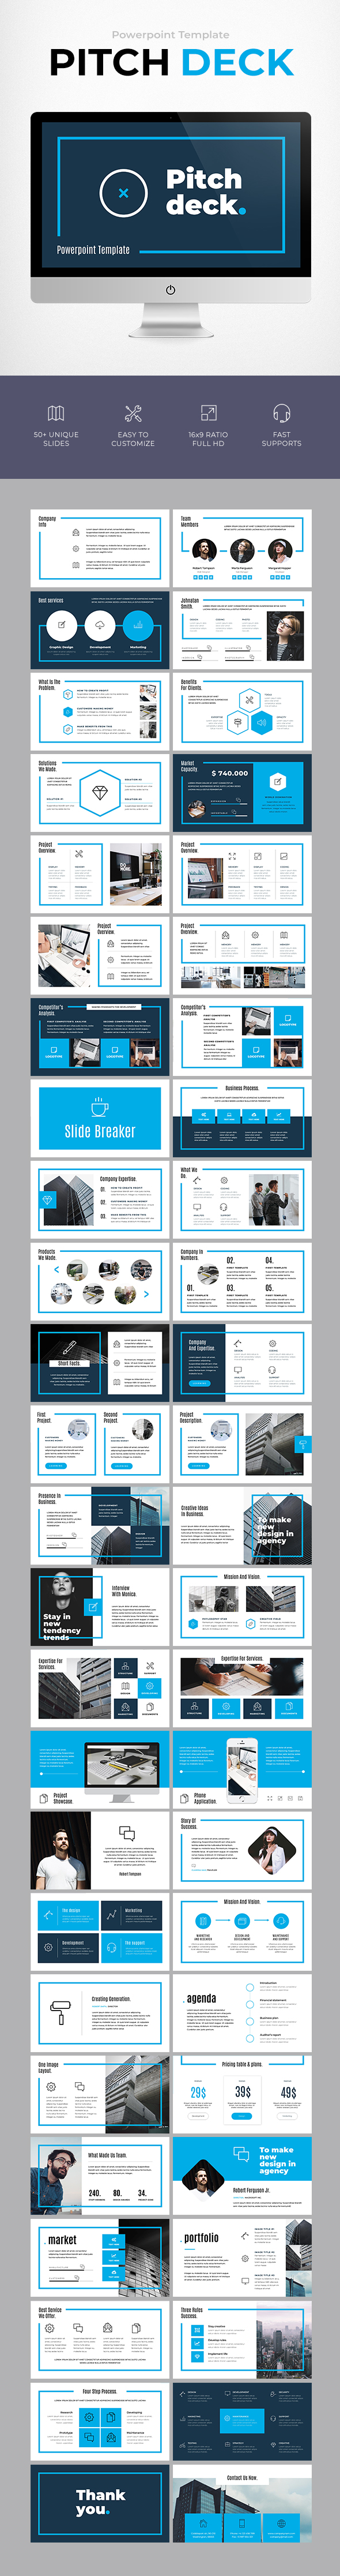 pitch deck template by becreative graphicriver. Black Bedroom Furniture Sets. Home Design Ideas